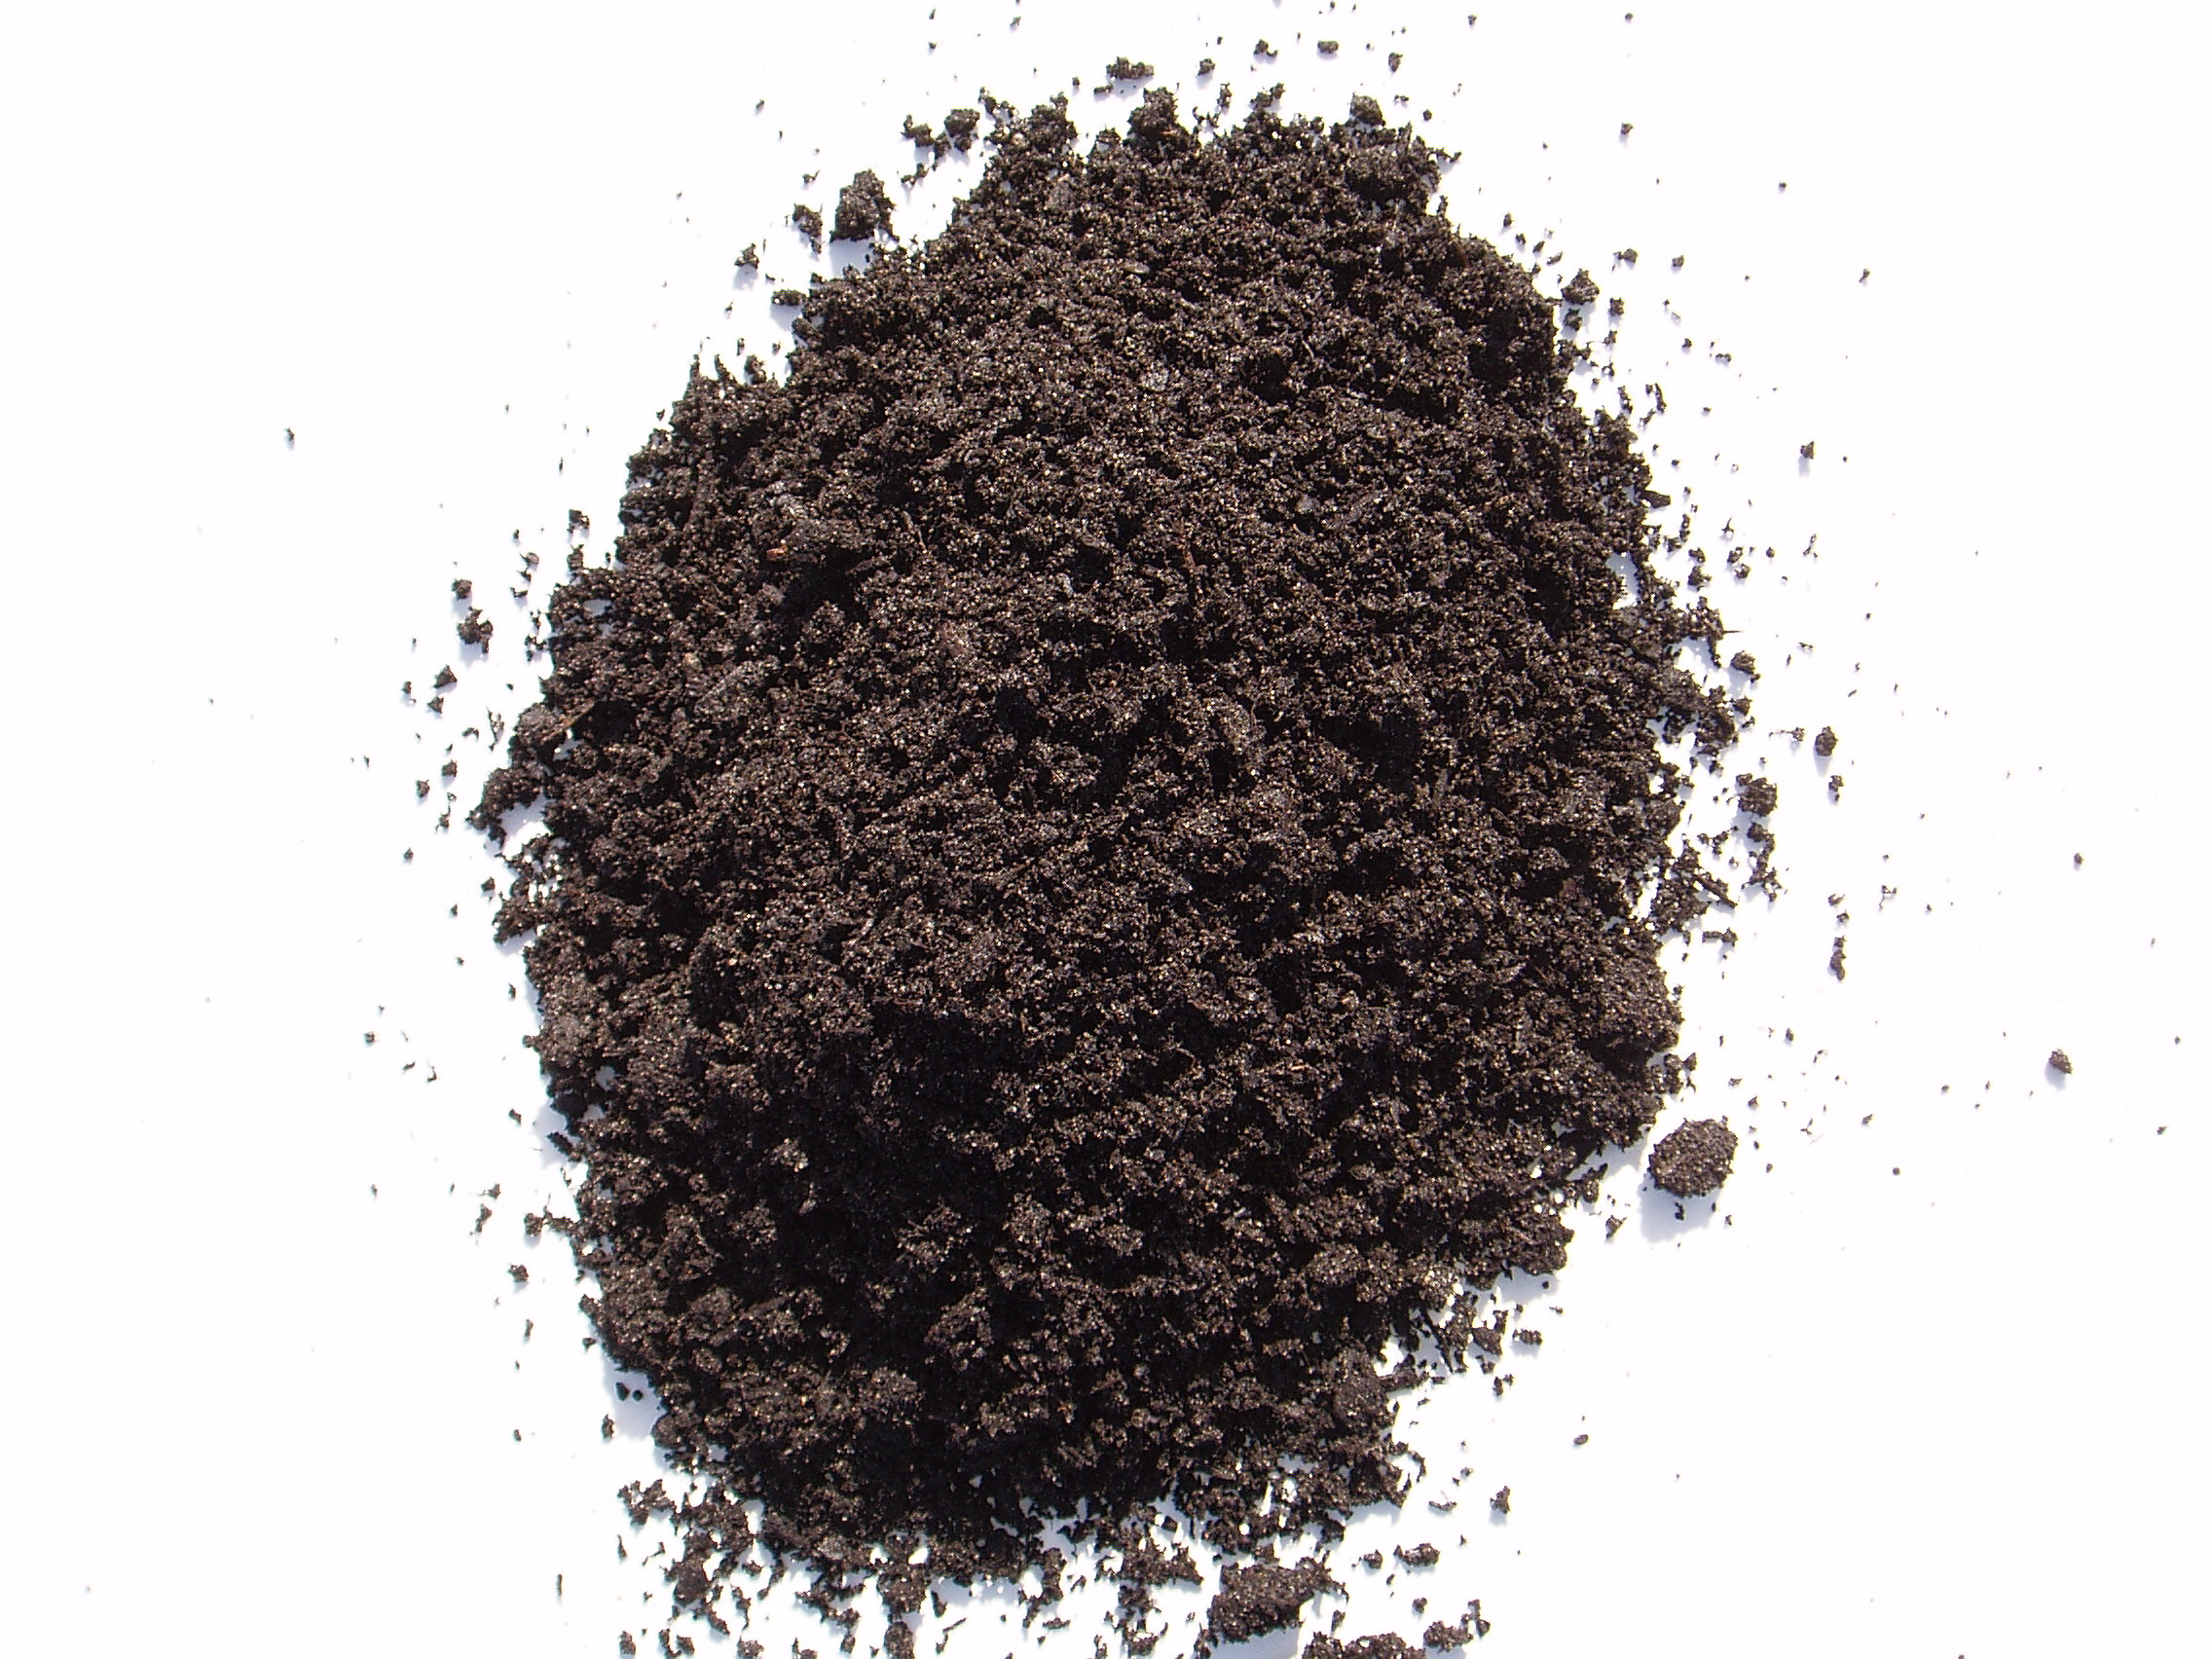 Description for Different types of soil wikipedia